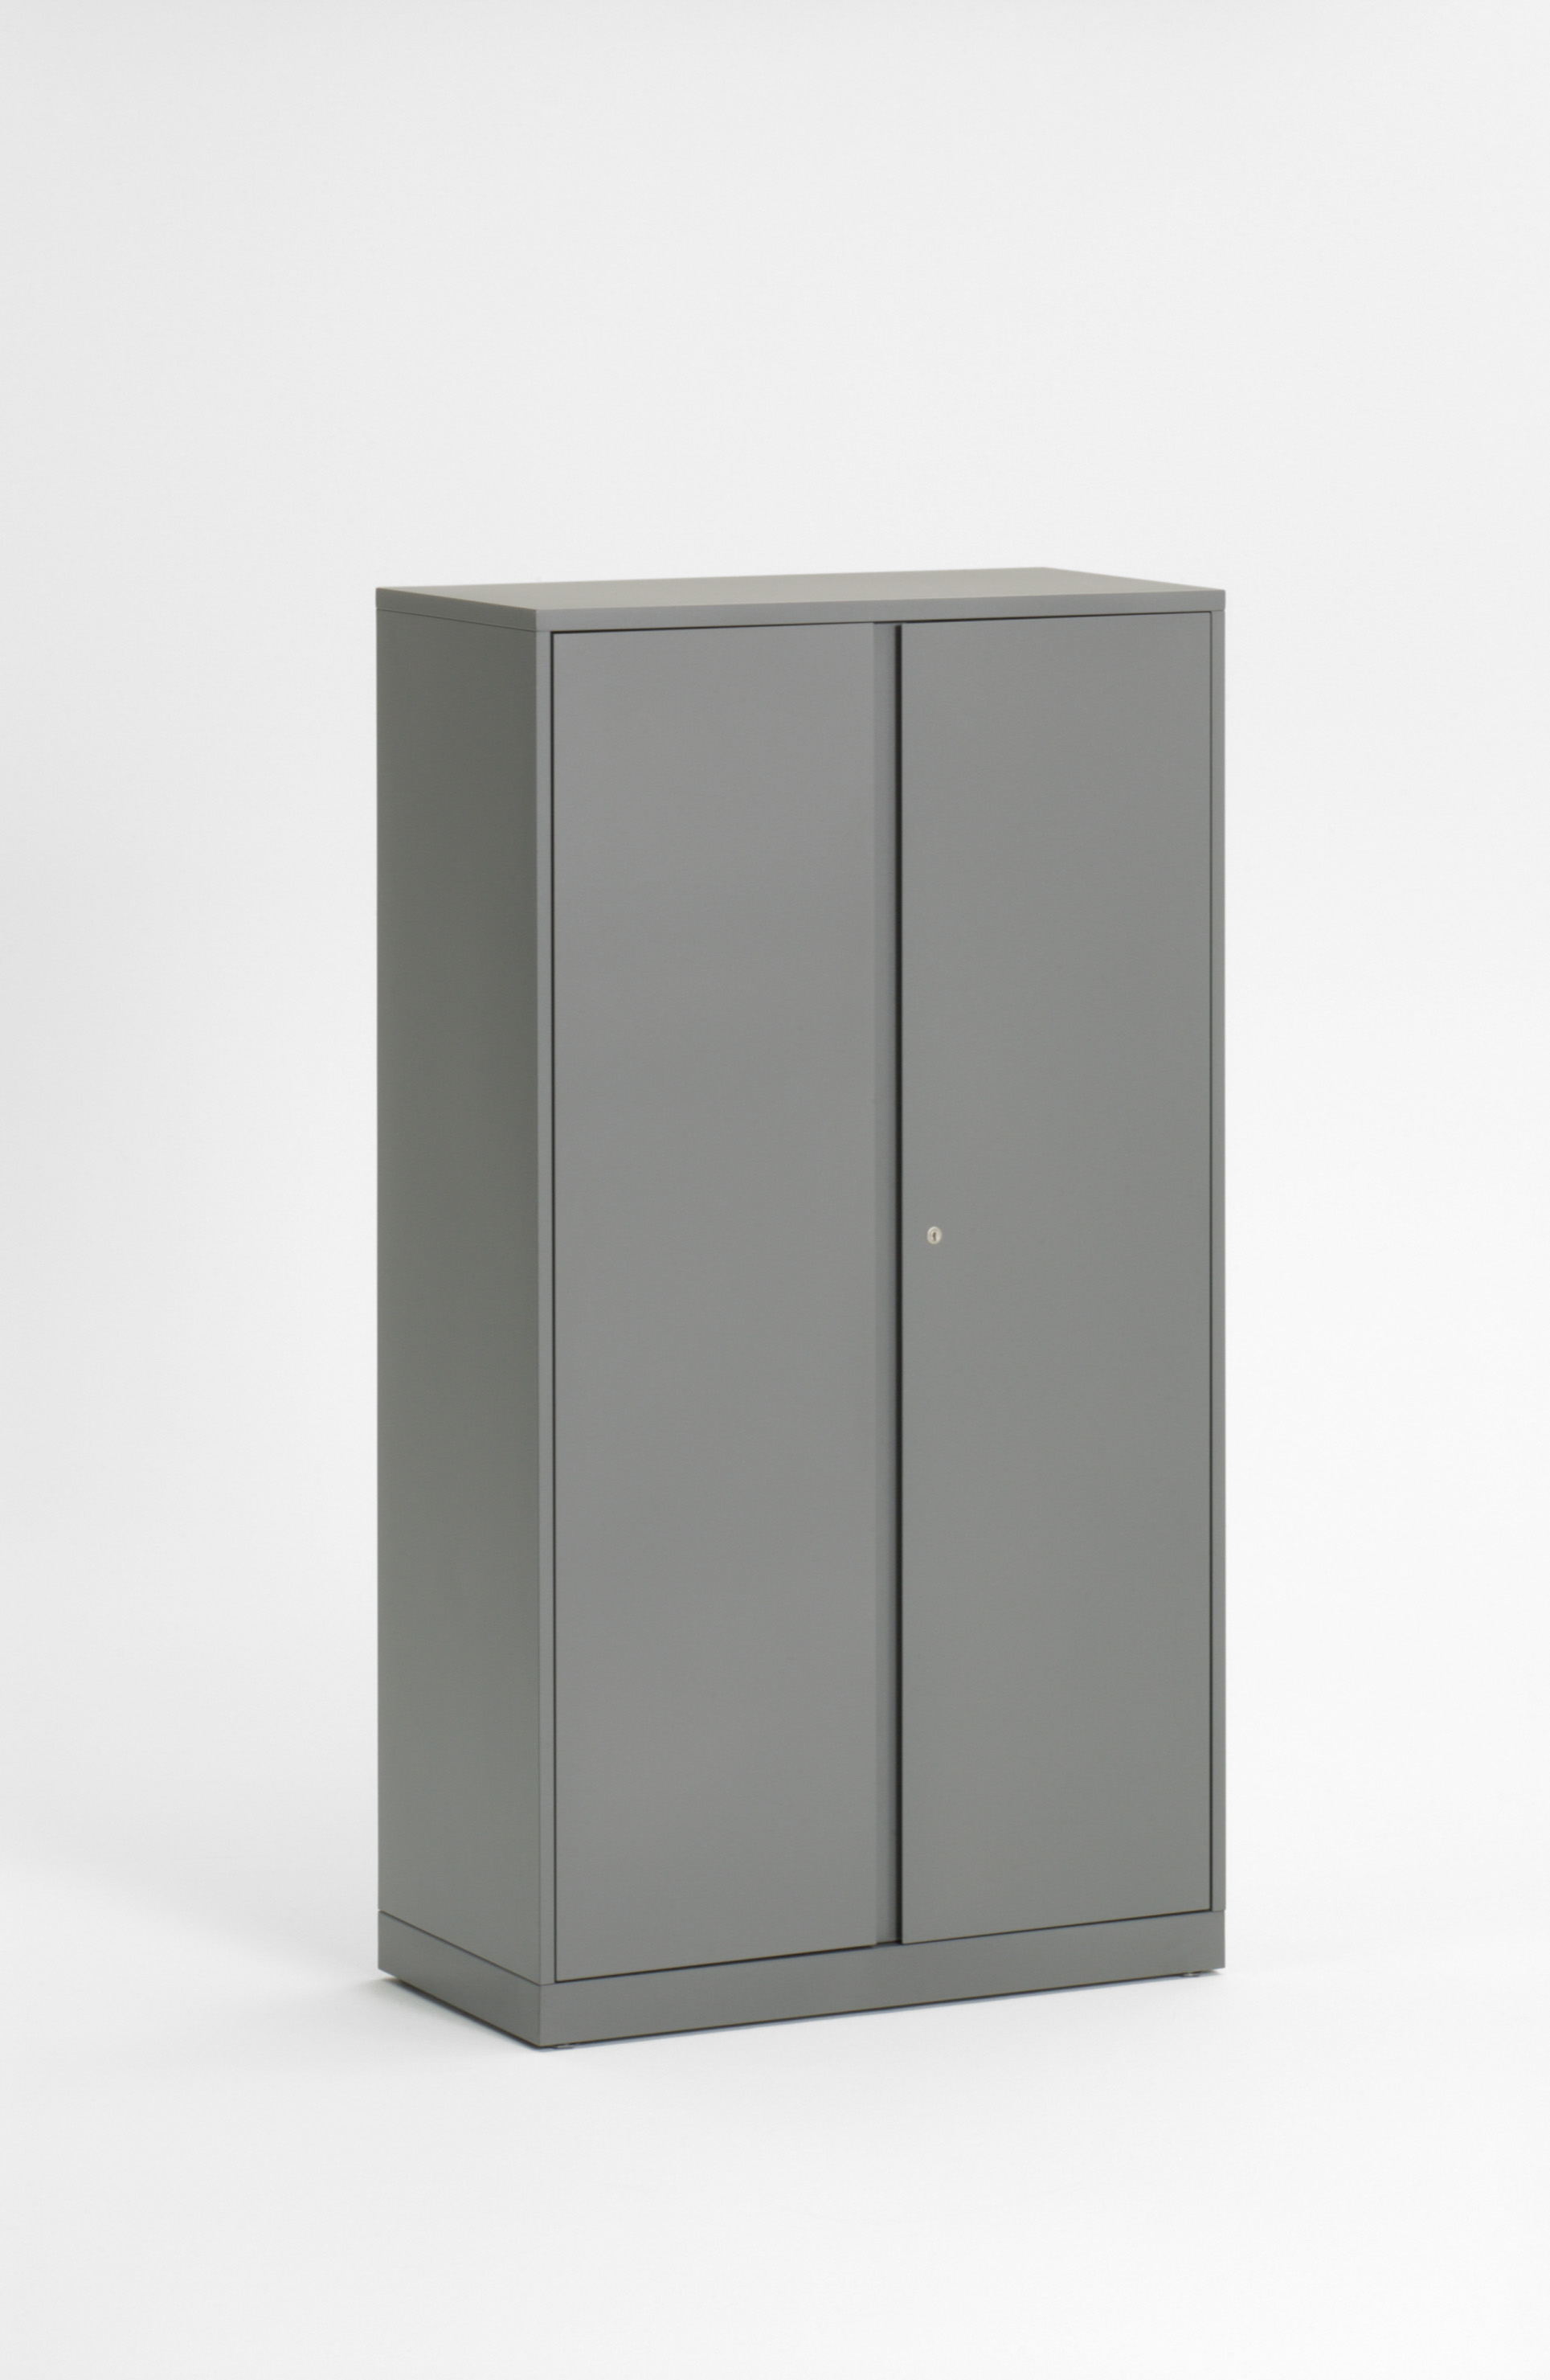 Universal Storage Cabinet and Wardrobe with flush steel fronts